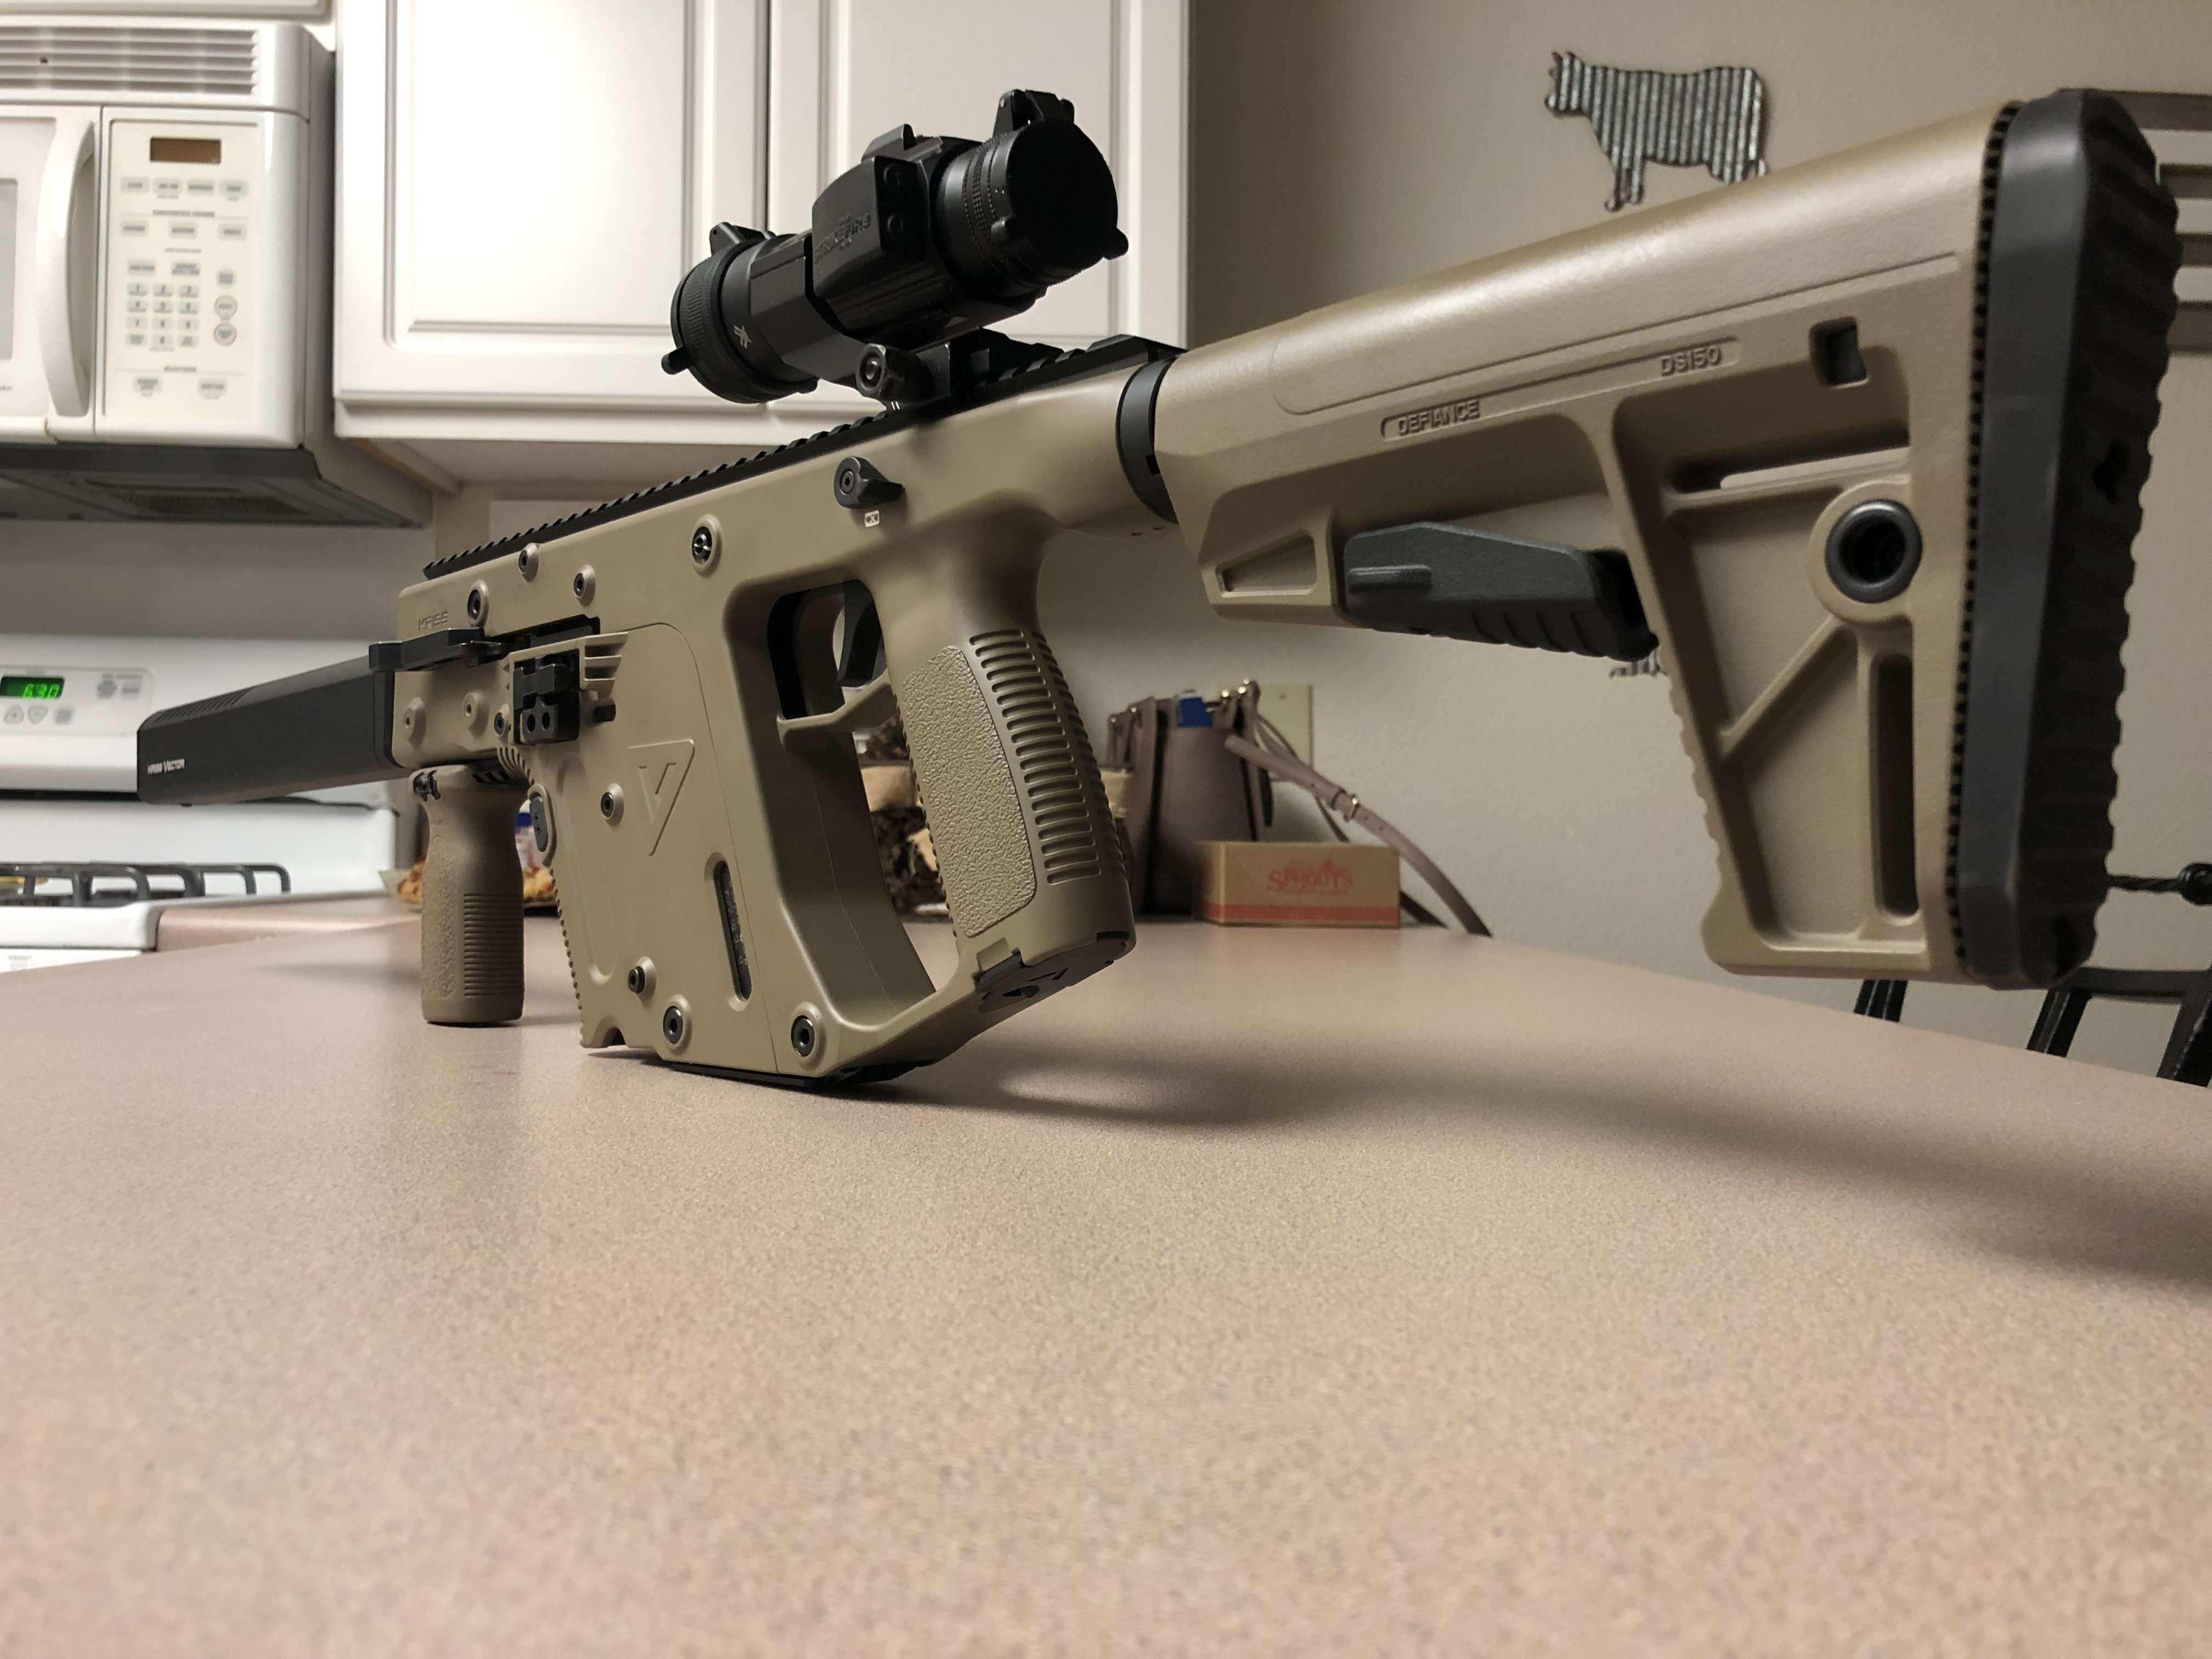 Kriss Vector Gen 2 CRB 9mm - Classified Ads - CouesWhitetail com